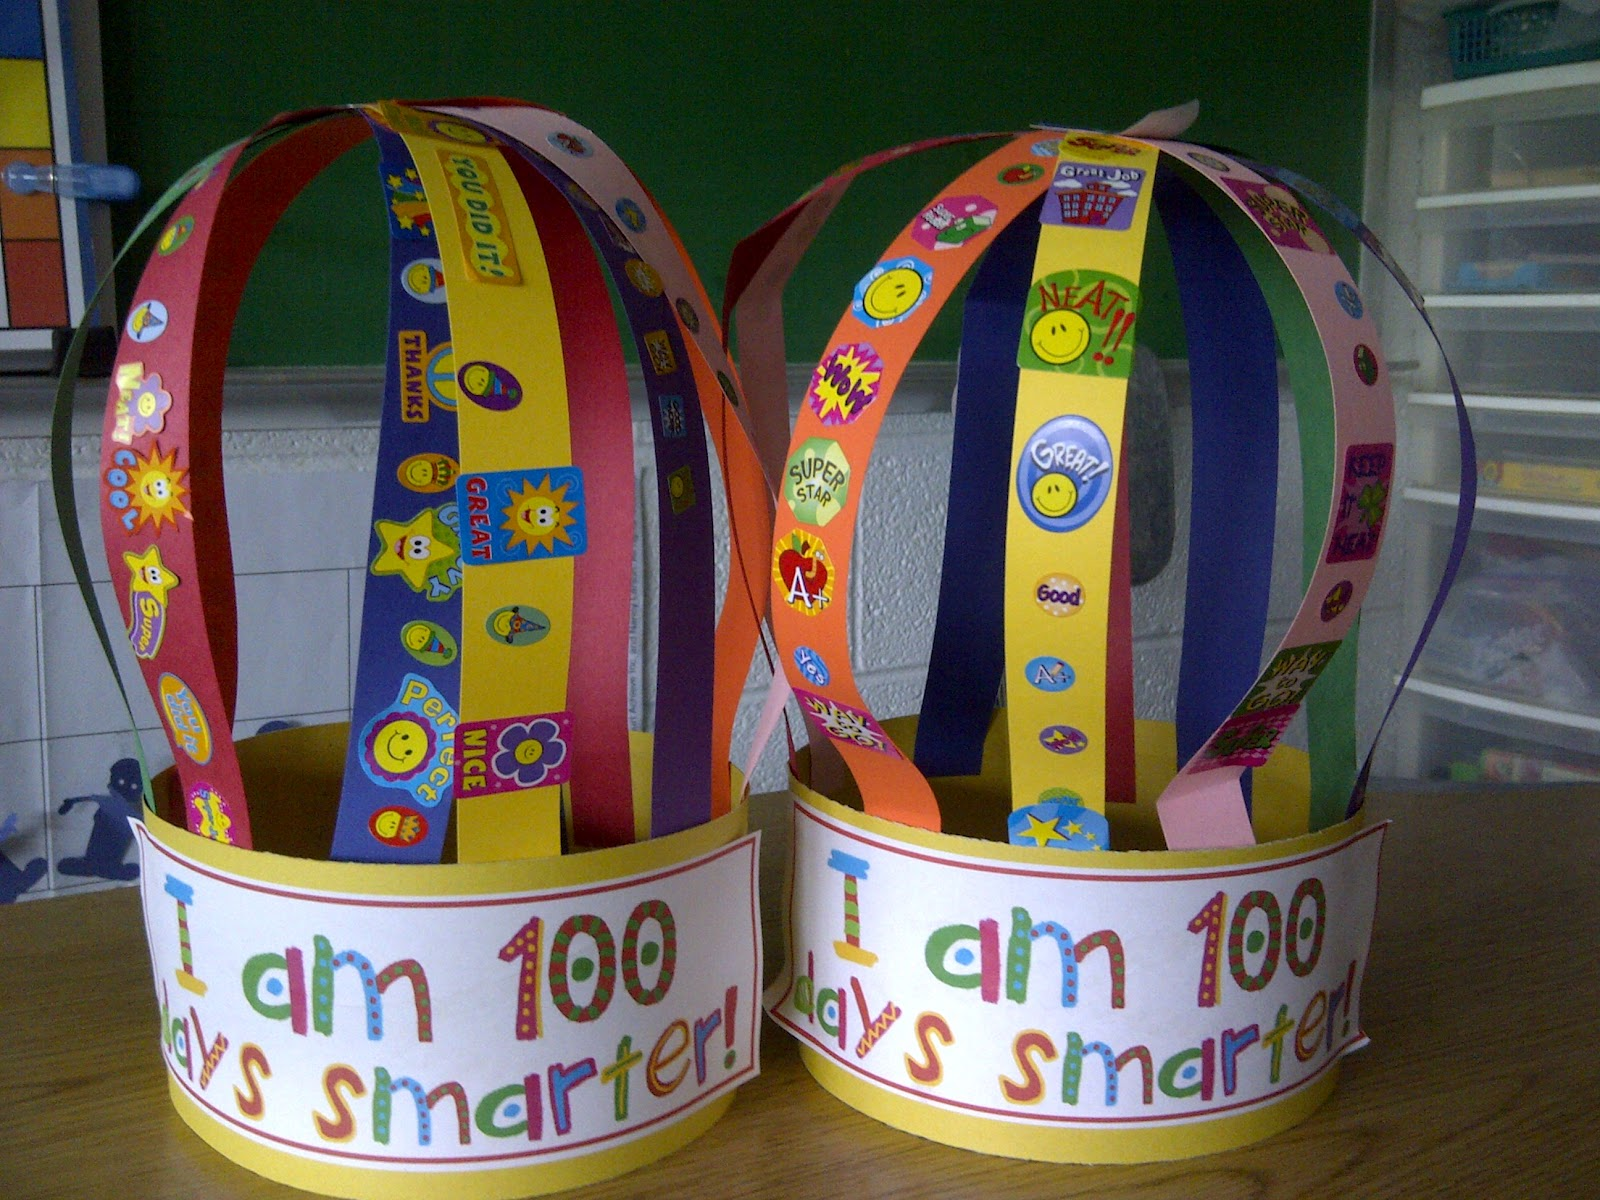 We Made These Awesome Hats They Placed 10 Stickers On Strips Of Paper And Attached To The Headband I Got This Idea Printable From Mrs Morrow S